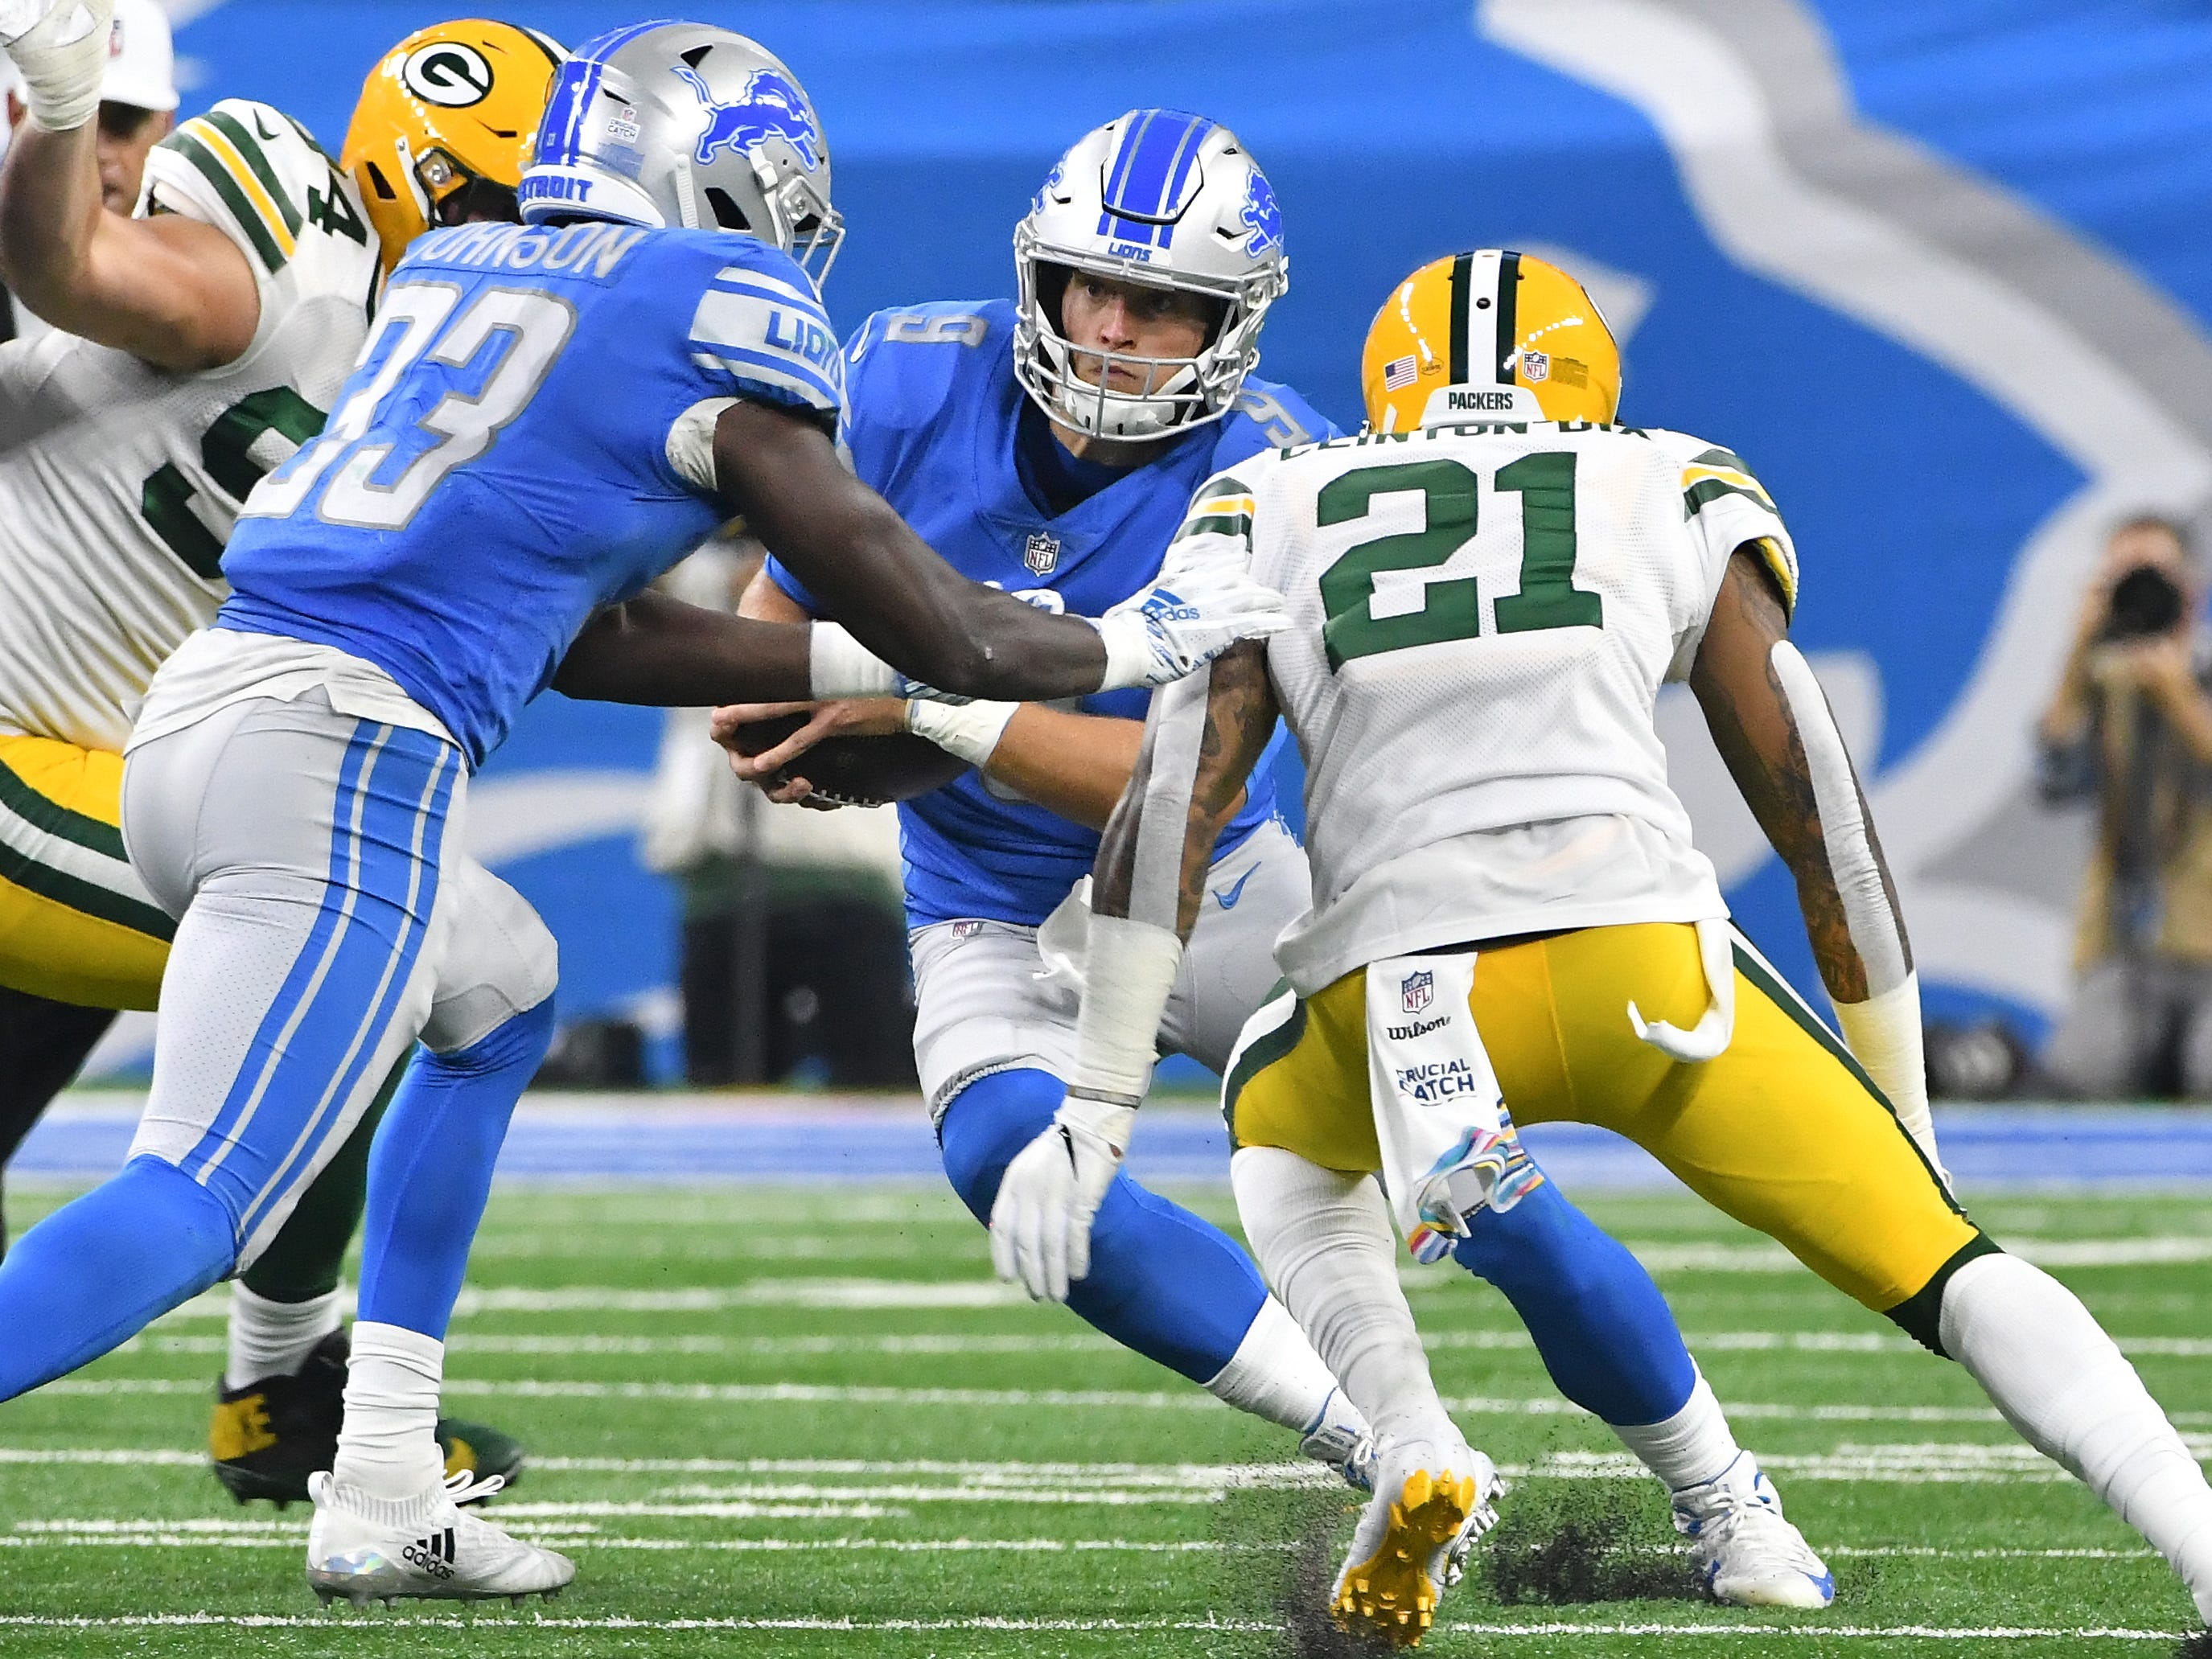 Lions quarterback Matthew Staffod can't evade the Packers defense, taking the sack by Green Bays' Ha Ha Clinton-Dix in the second quarter.